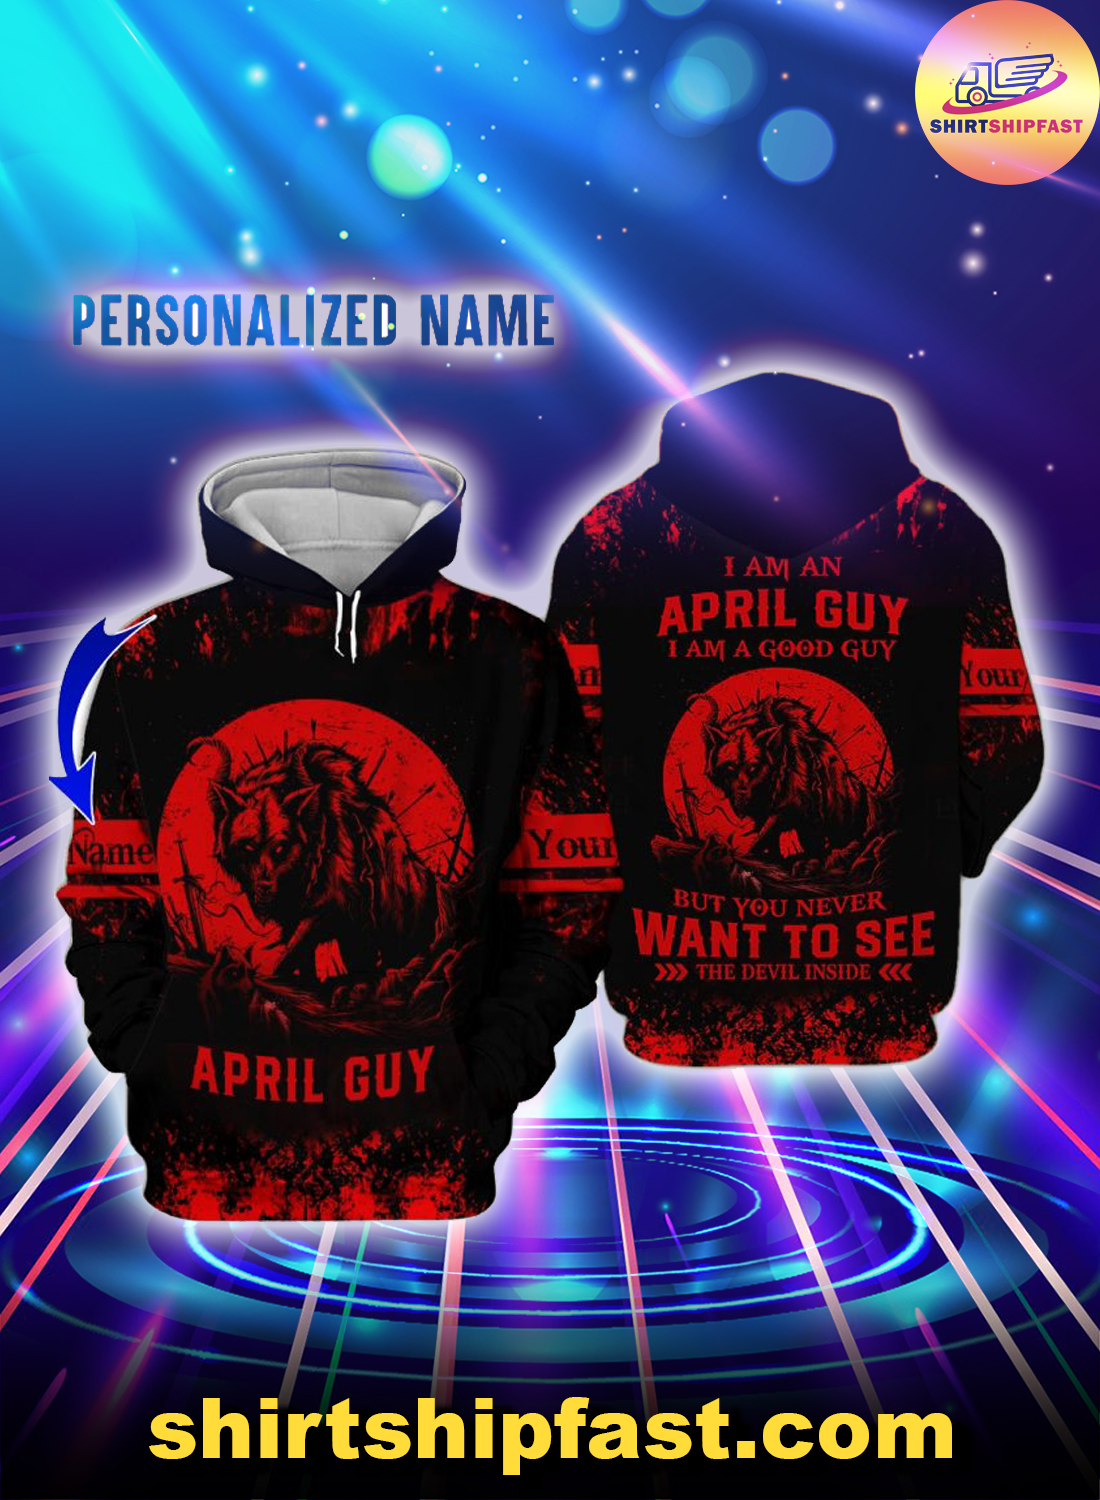 Personalized name I am a April guy I am a good guy but you never want to see the devil inside 3d hoodie